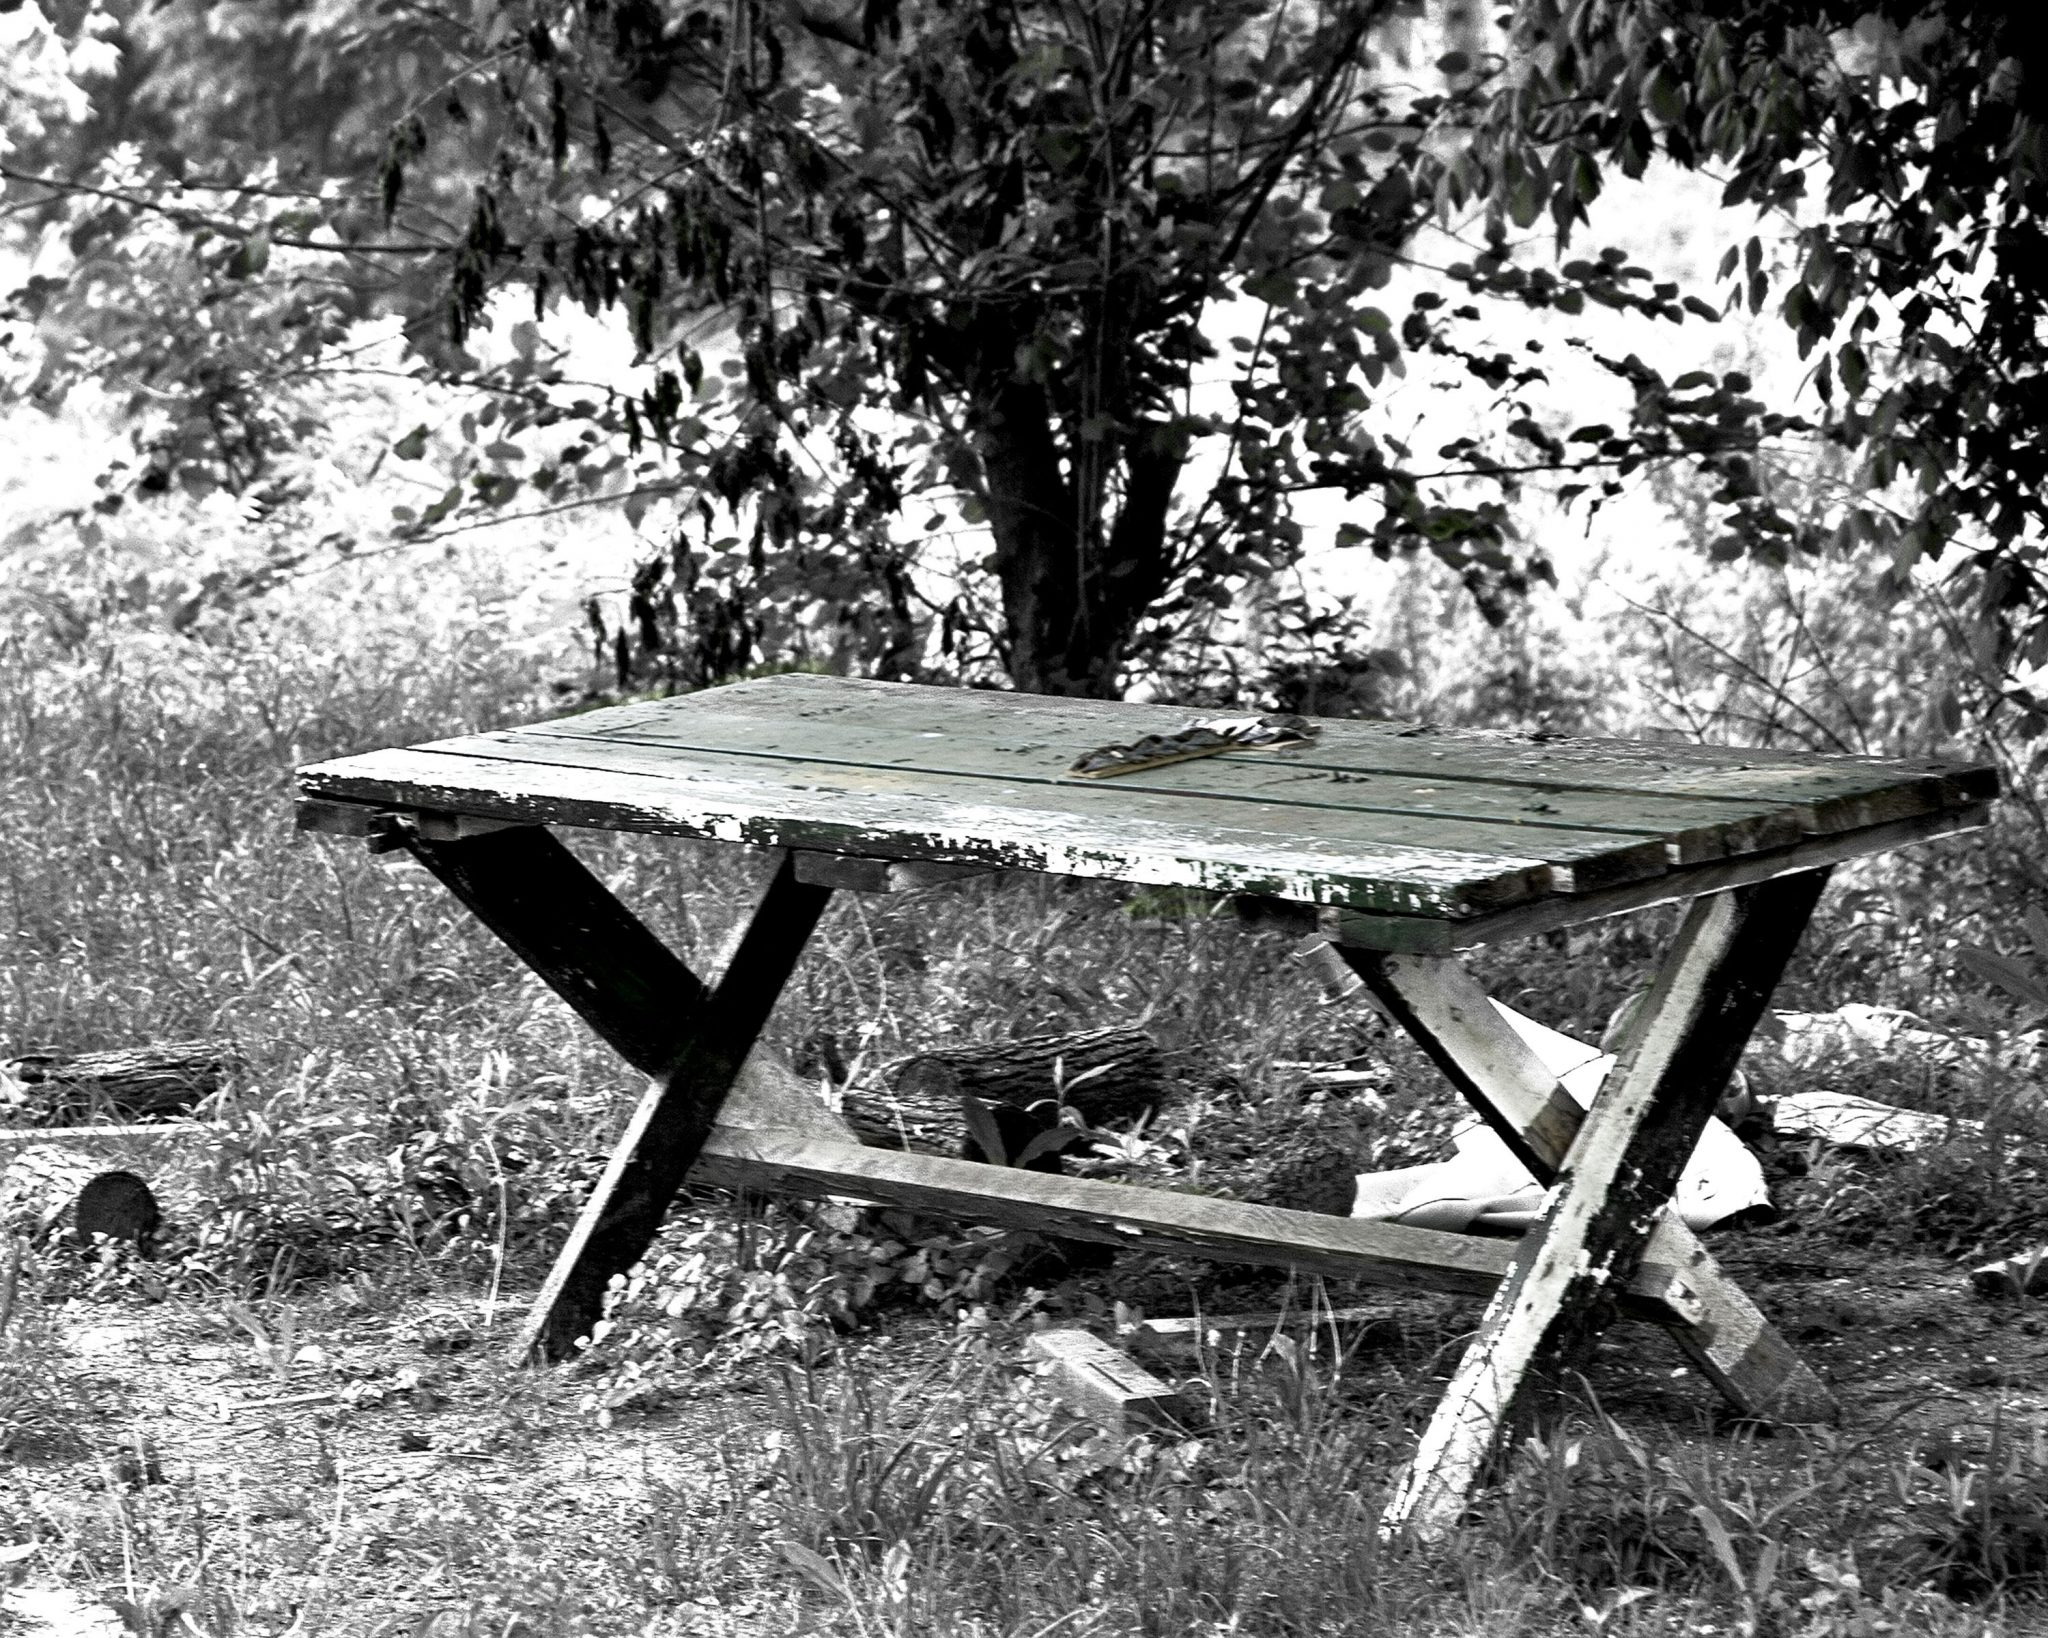 picnic table from the Lost Trailer Park series